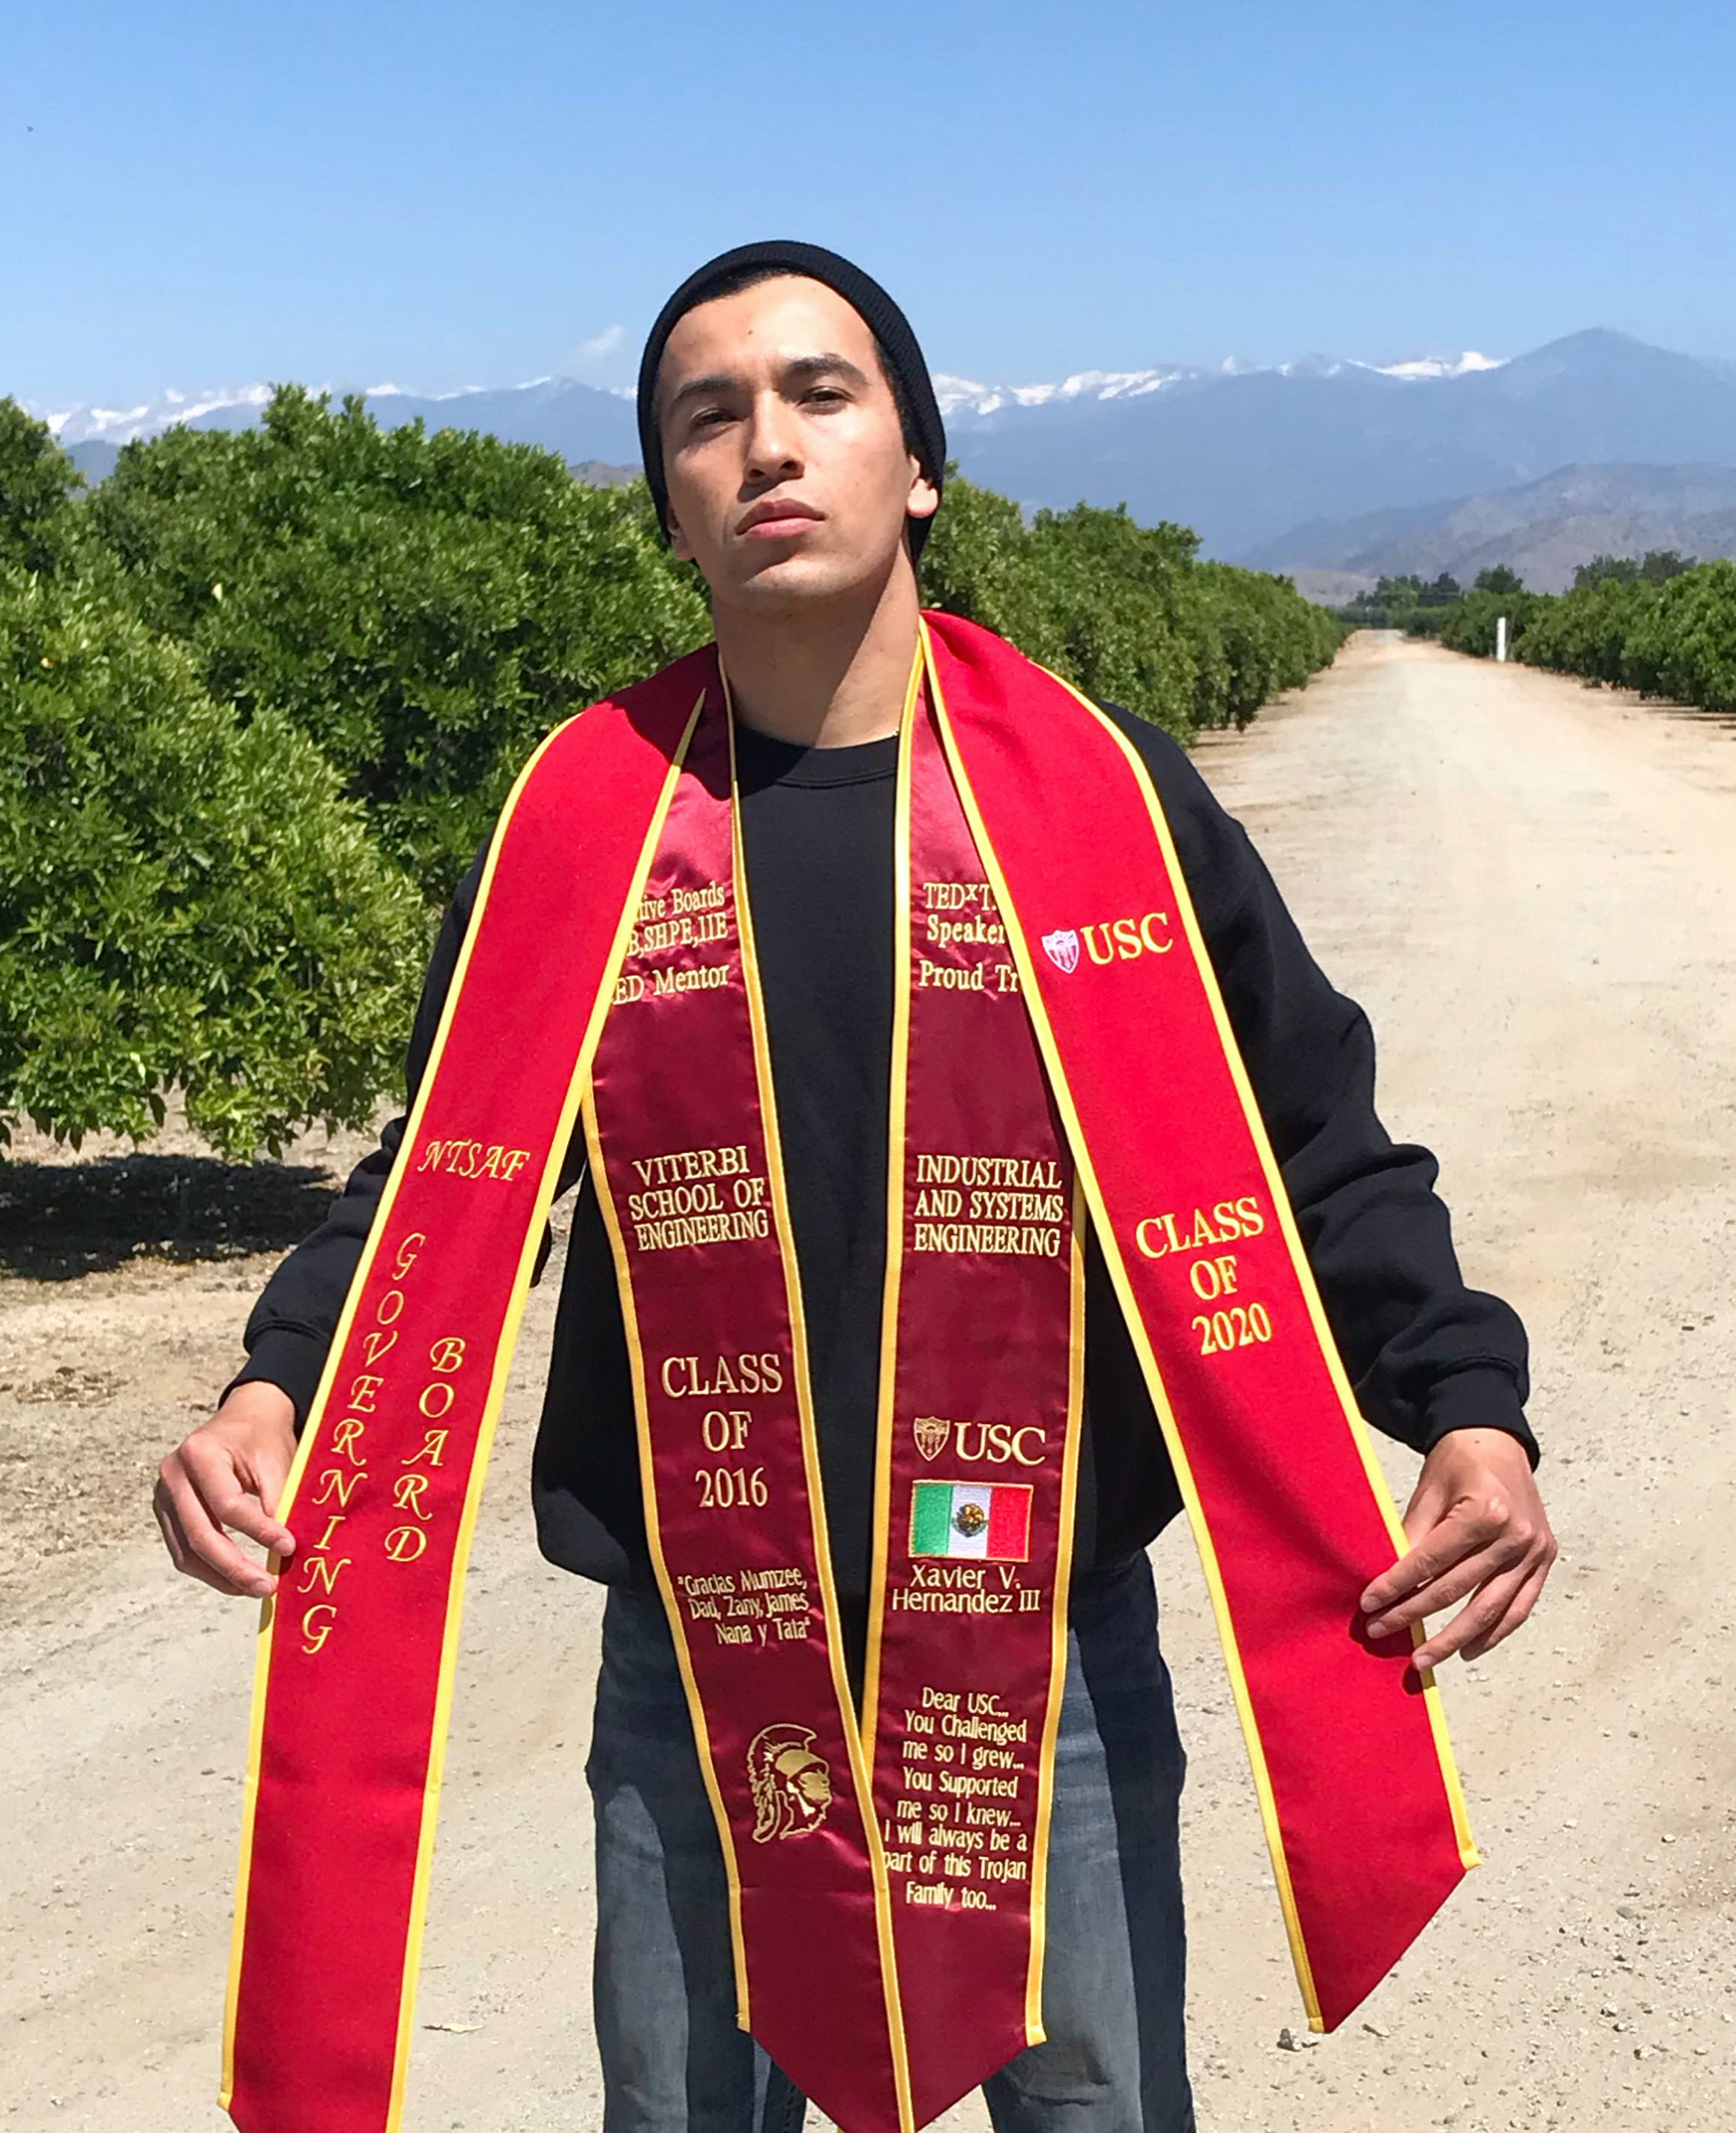 Graduating male with 2 red sashes